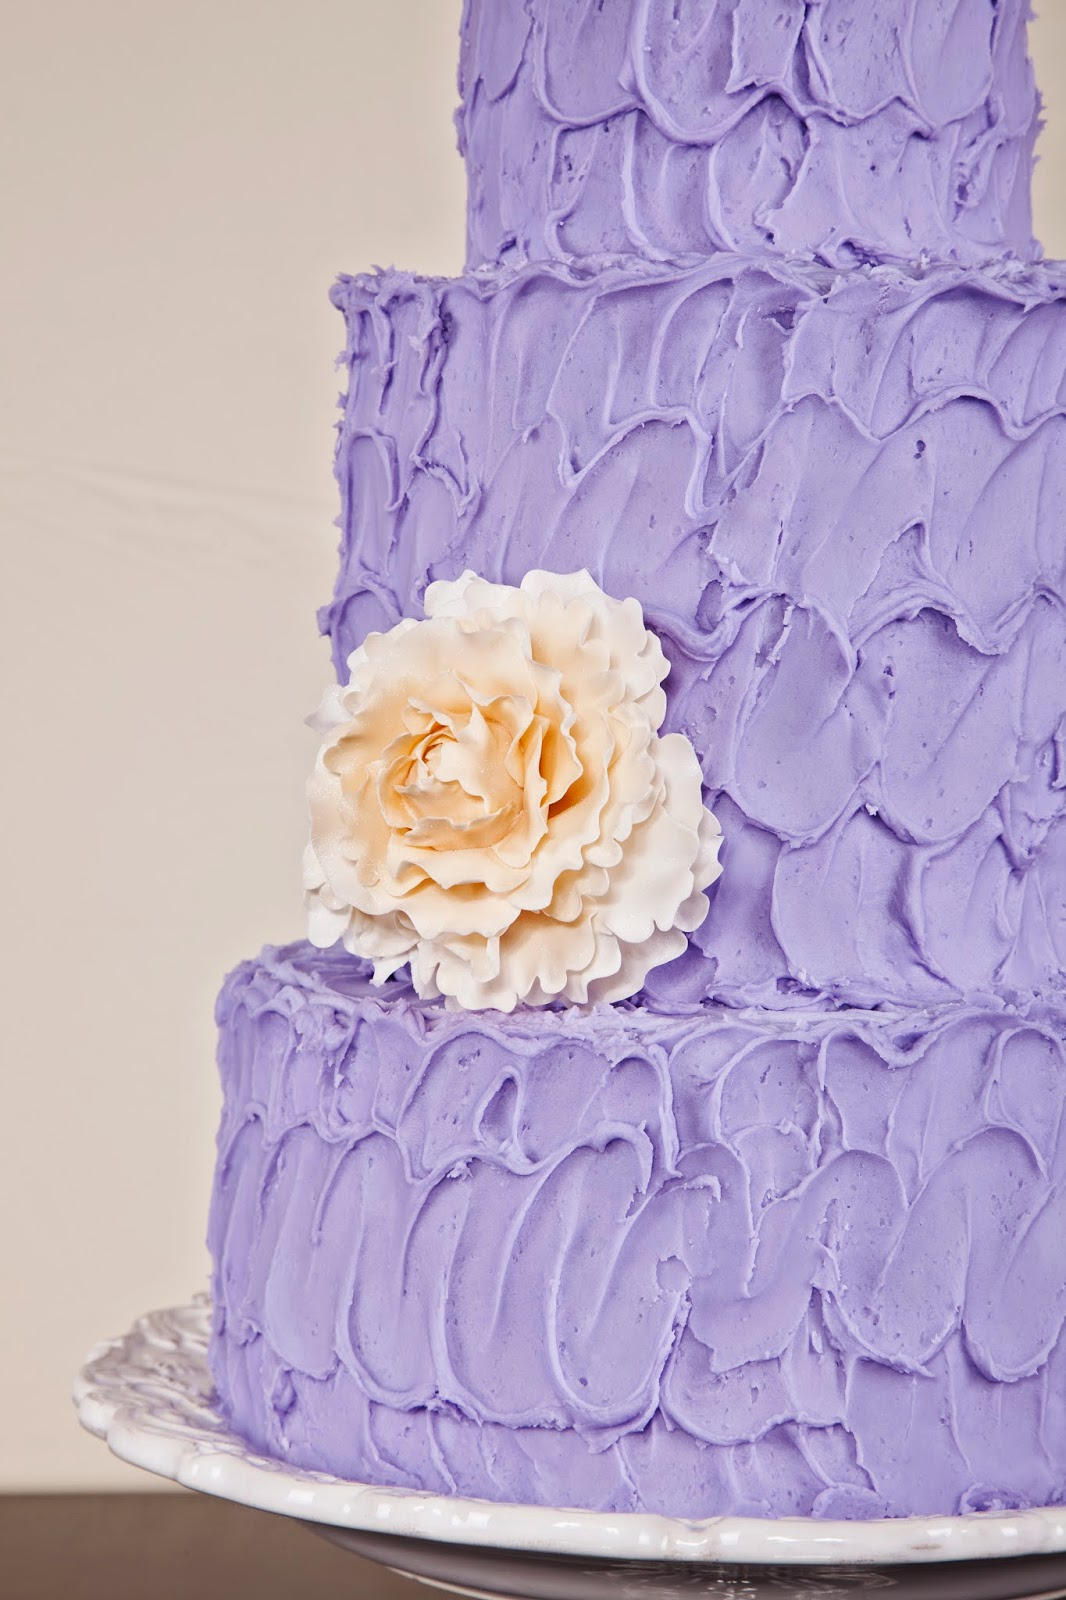 Delectable Cakes: Purple Textured Frosting Wedding Cake